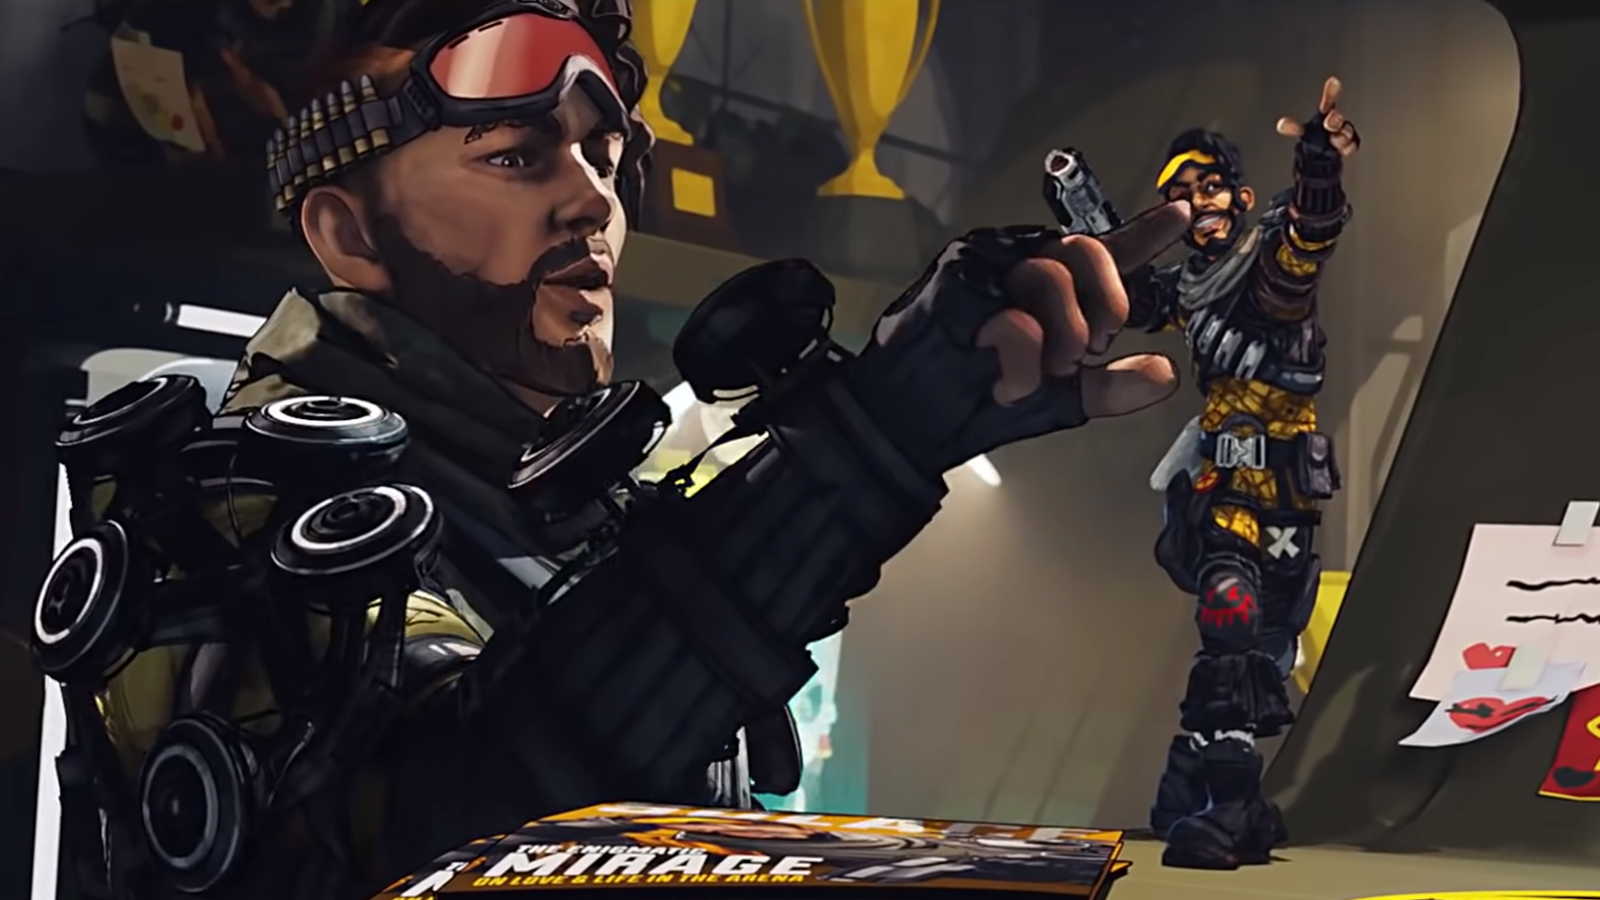 Respawn have admitted Mirage's successful rework has opened the door for more Apex Legends overhauls in the future.